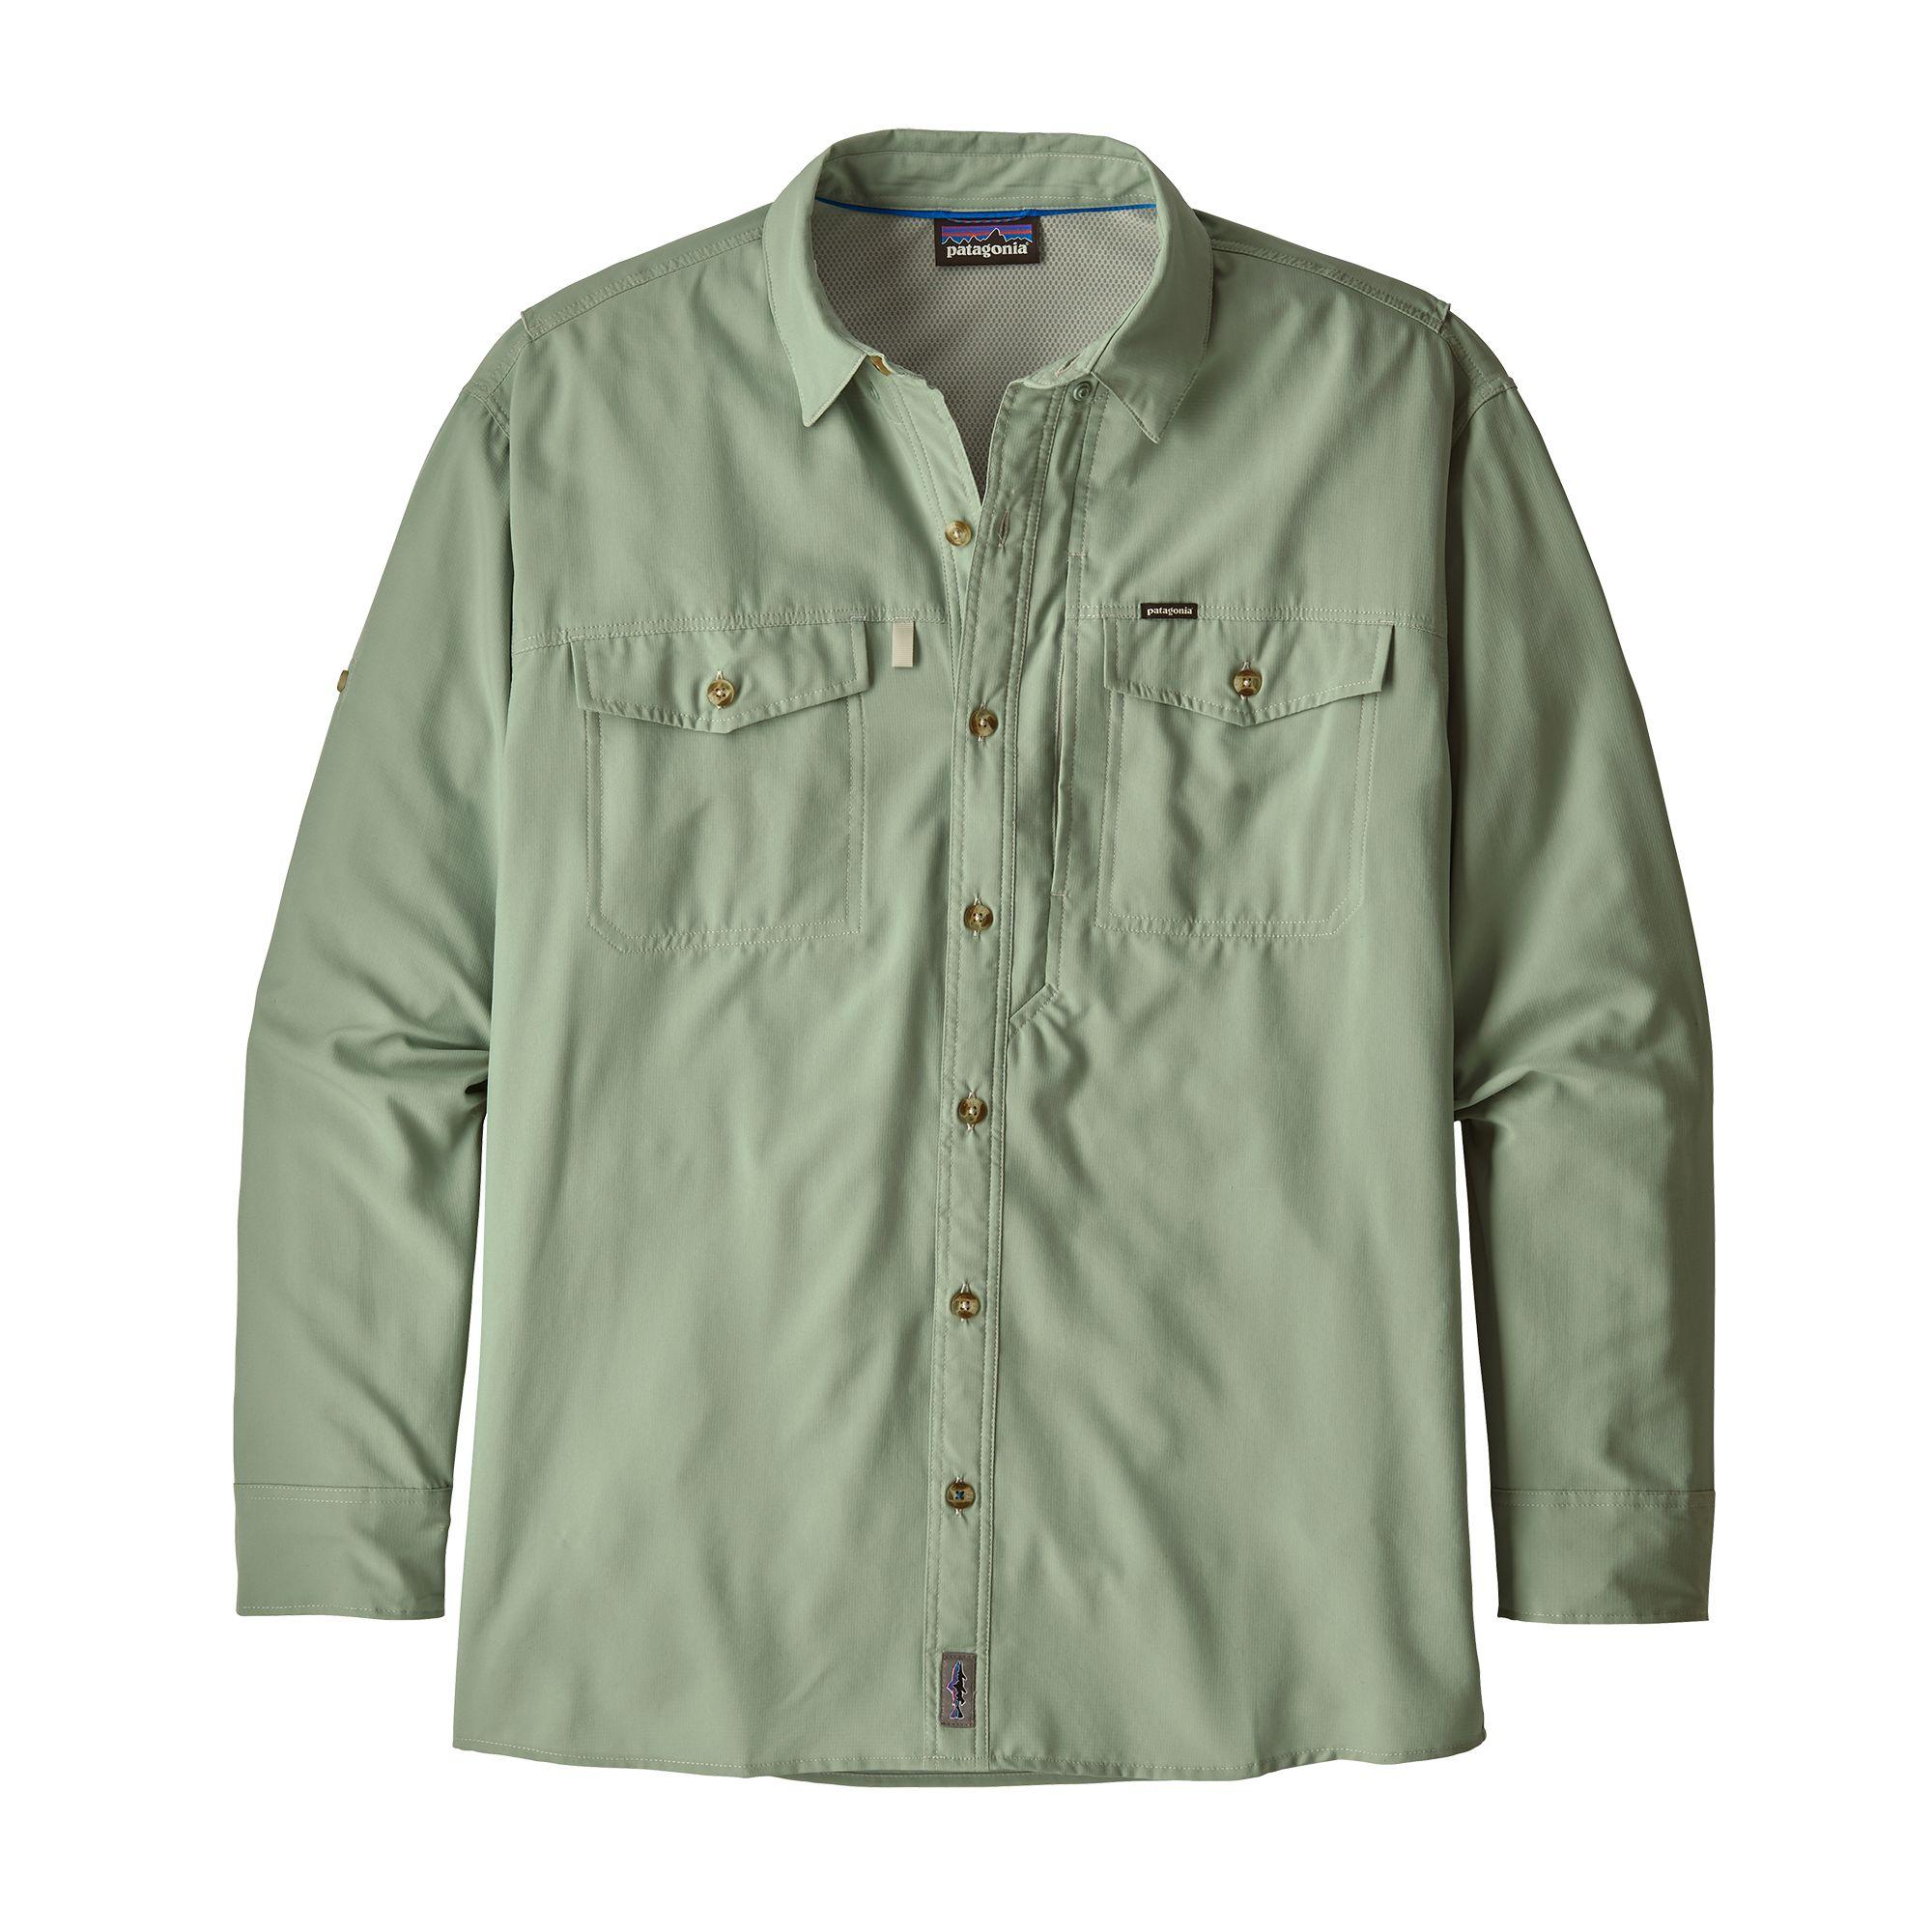 Men's Patagonia Sol Patrol II button down shirt in Celadon, or light grey-green